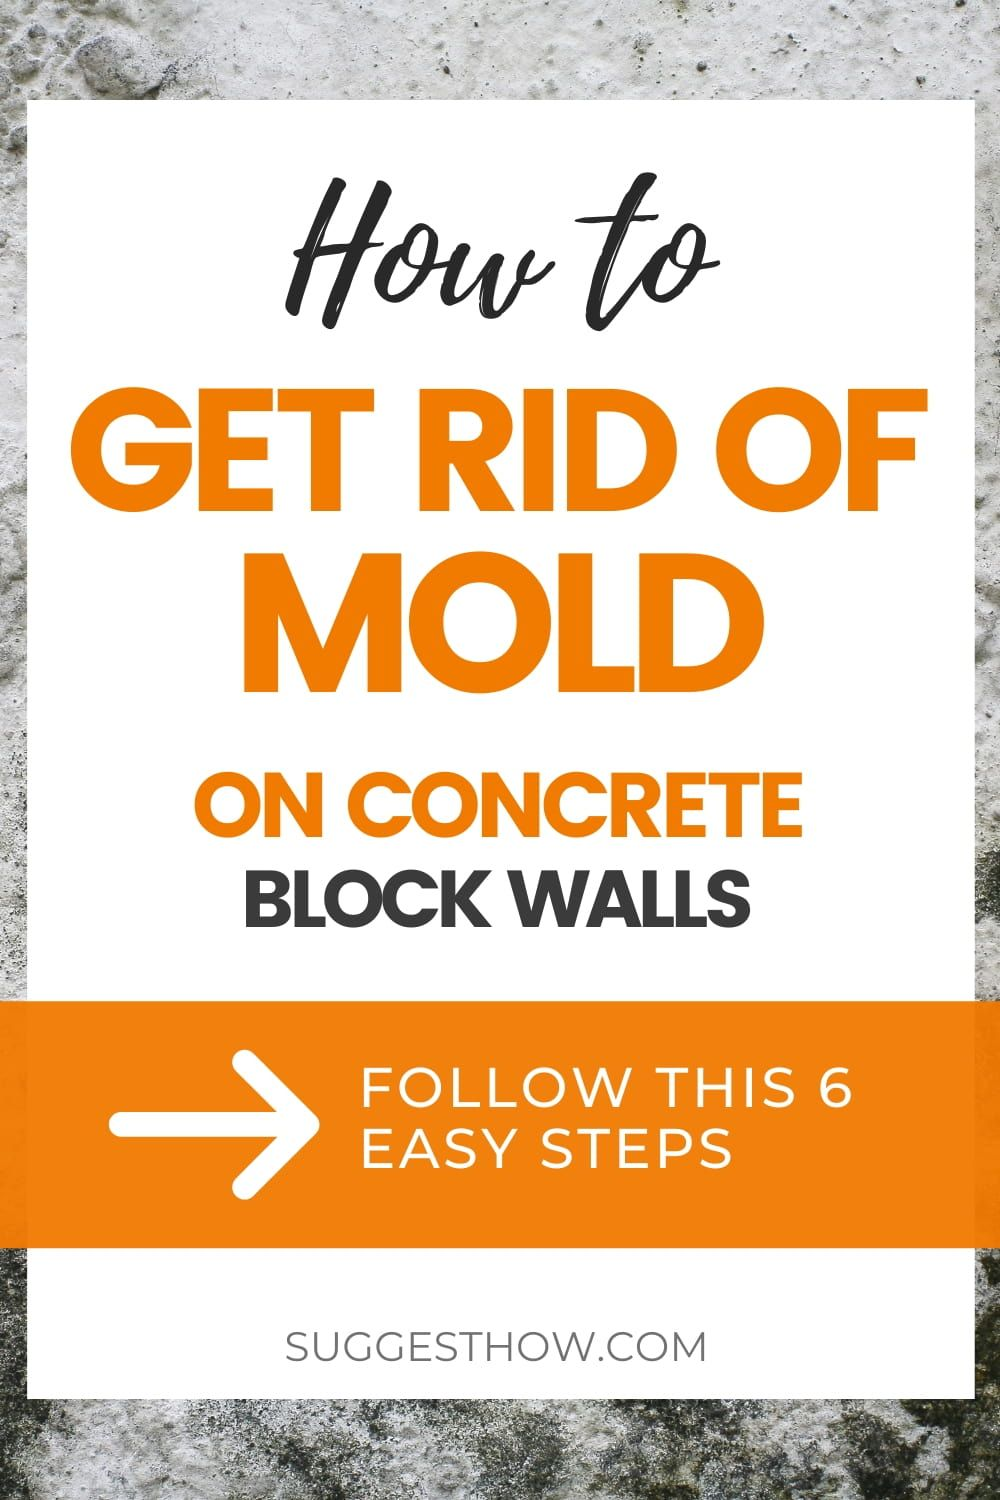 How to Get Rid of Mold on Concrete Block Walls Step by